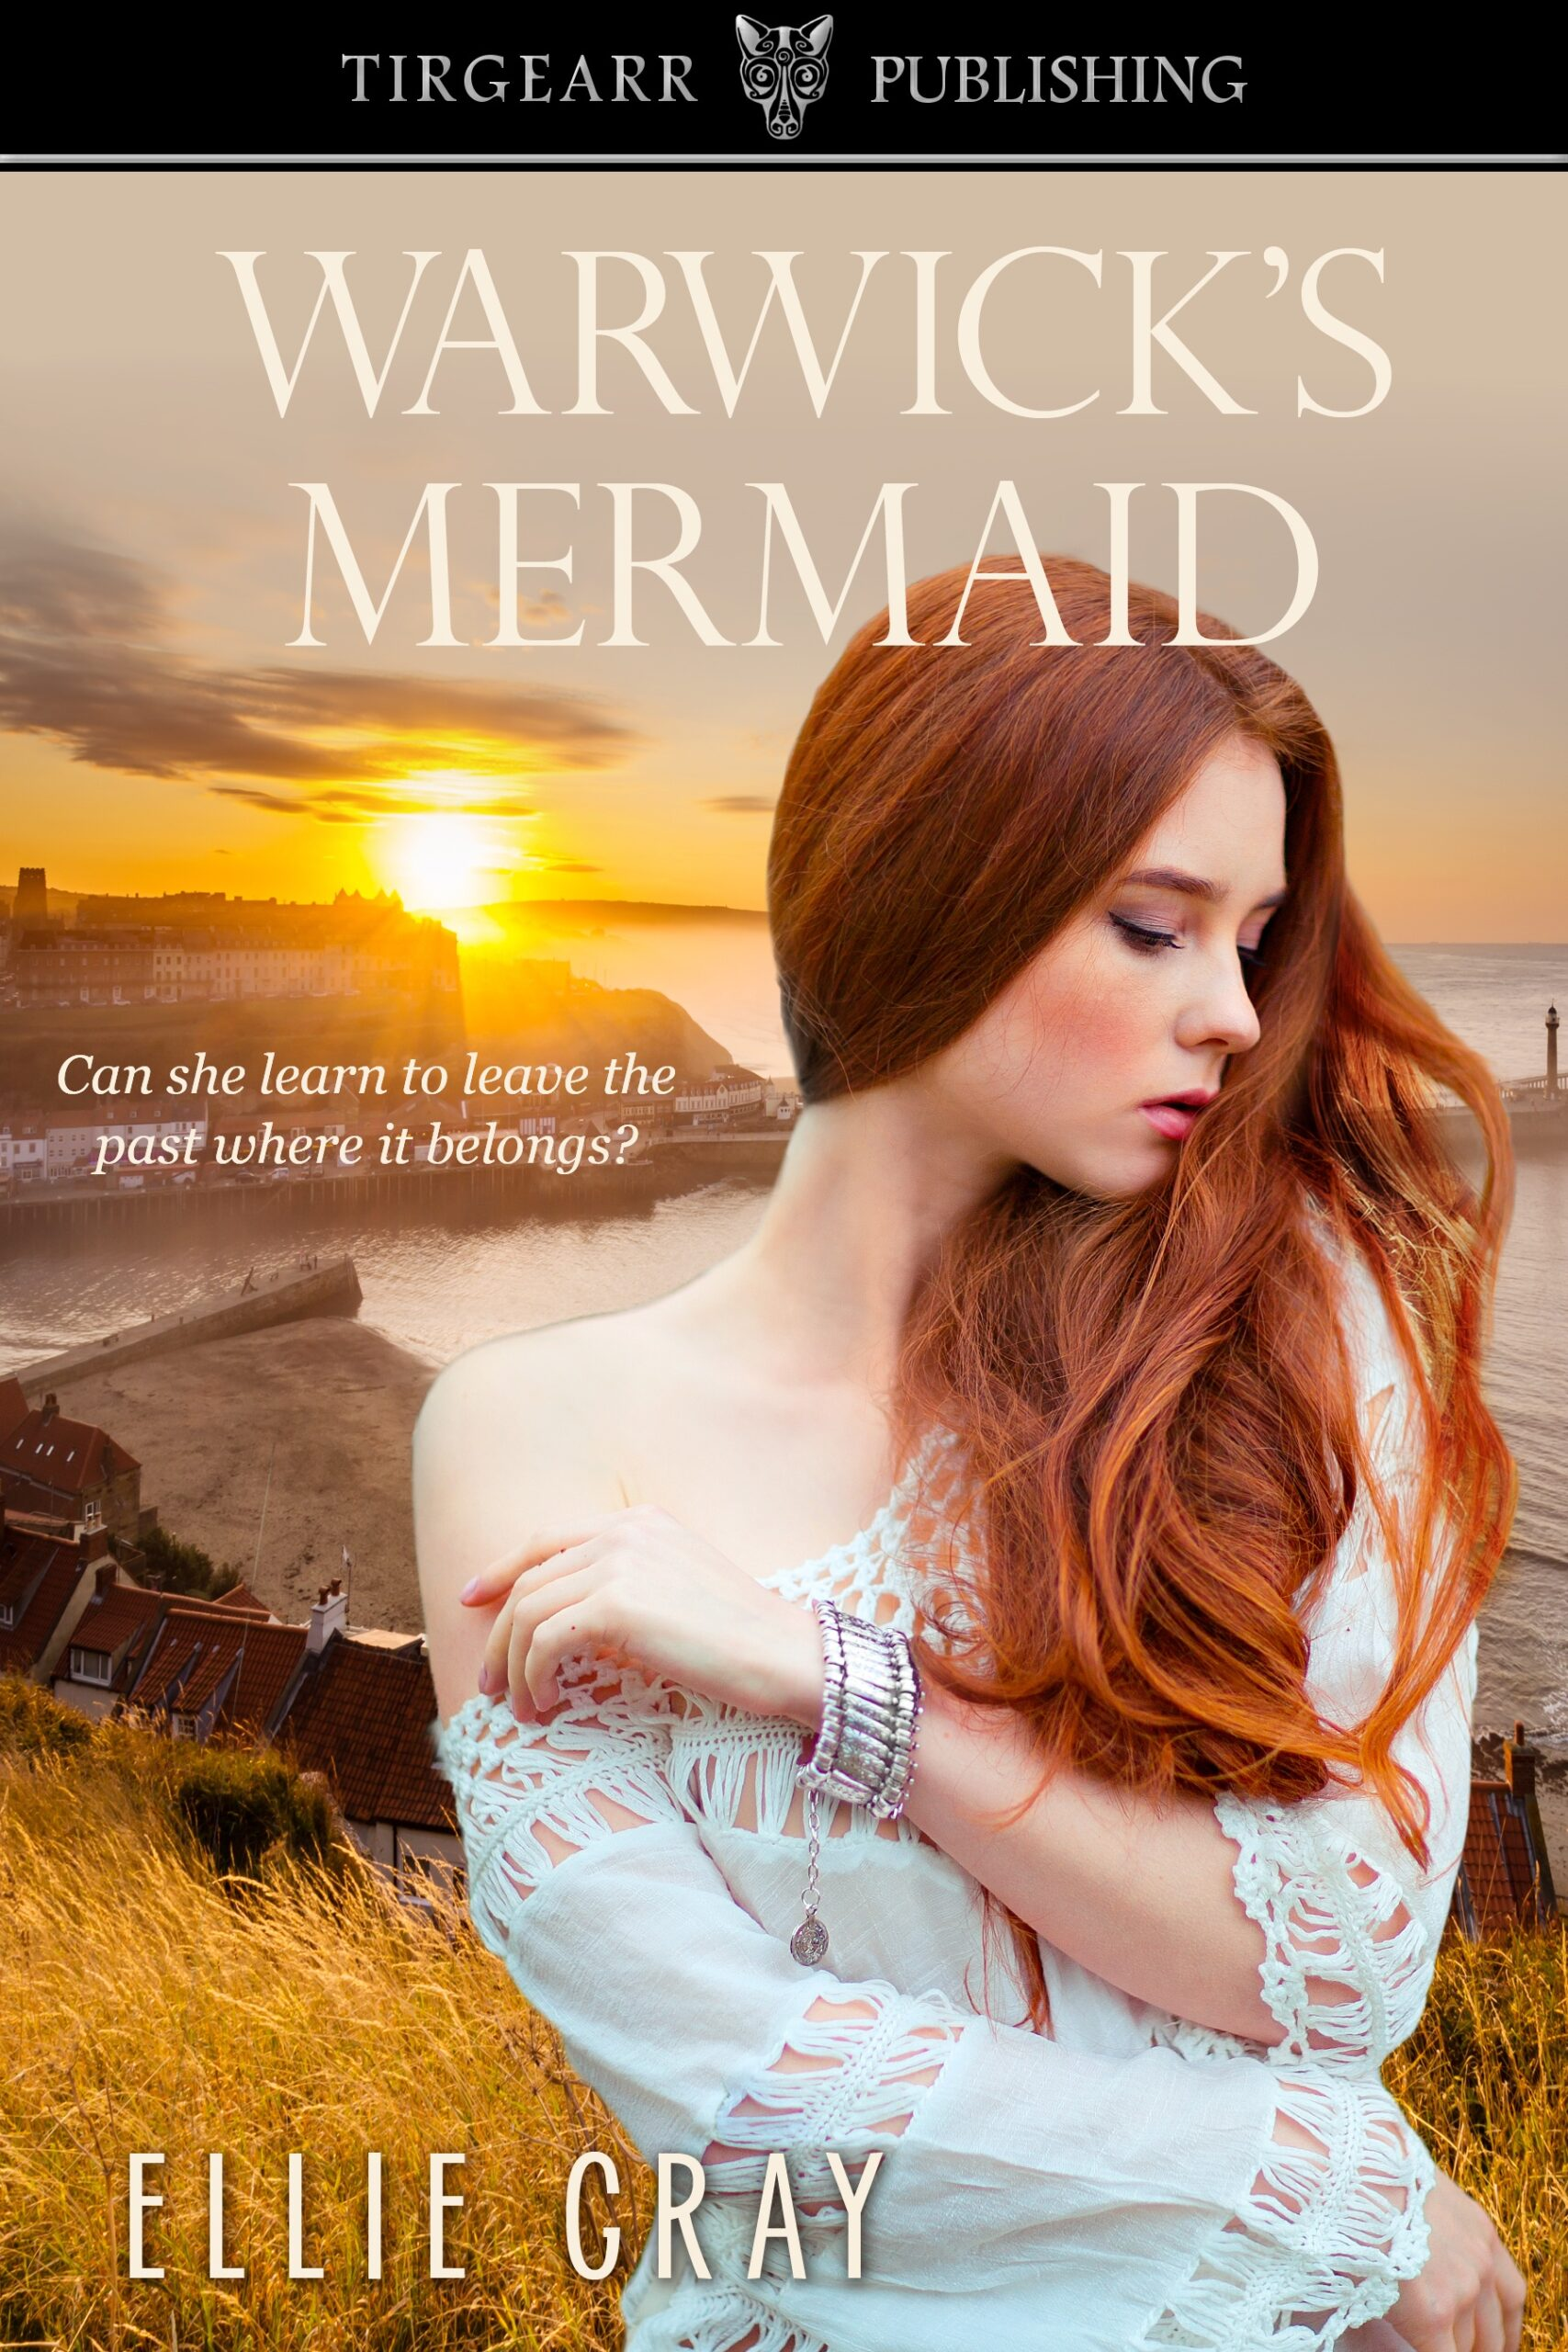 Review: Warwick's Mermaid, by Ellie Gray